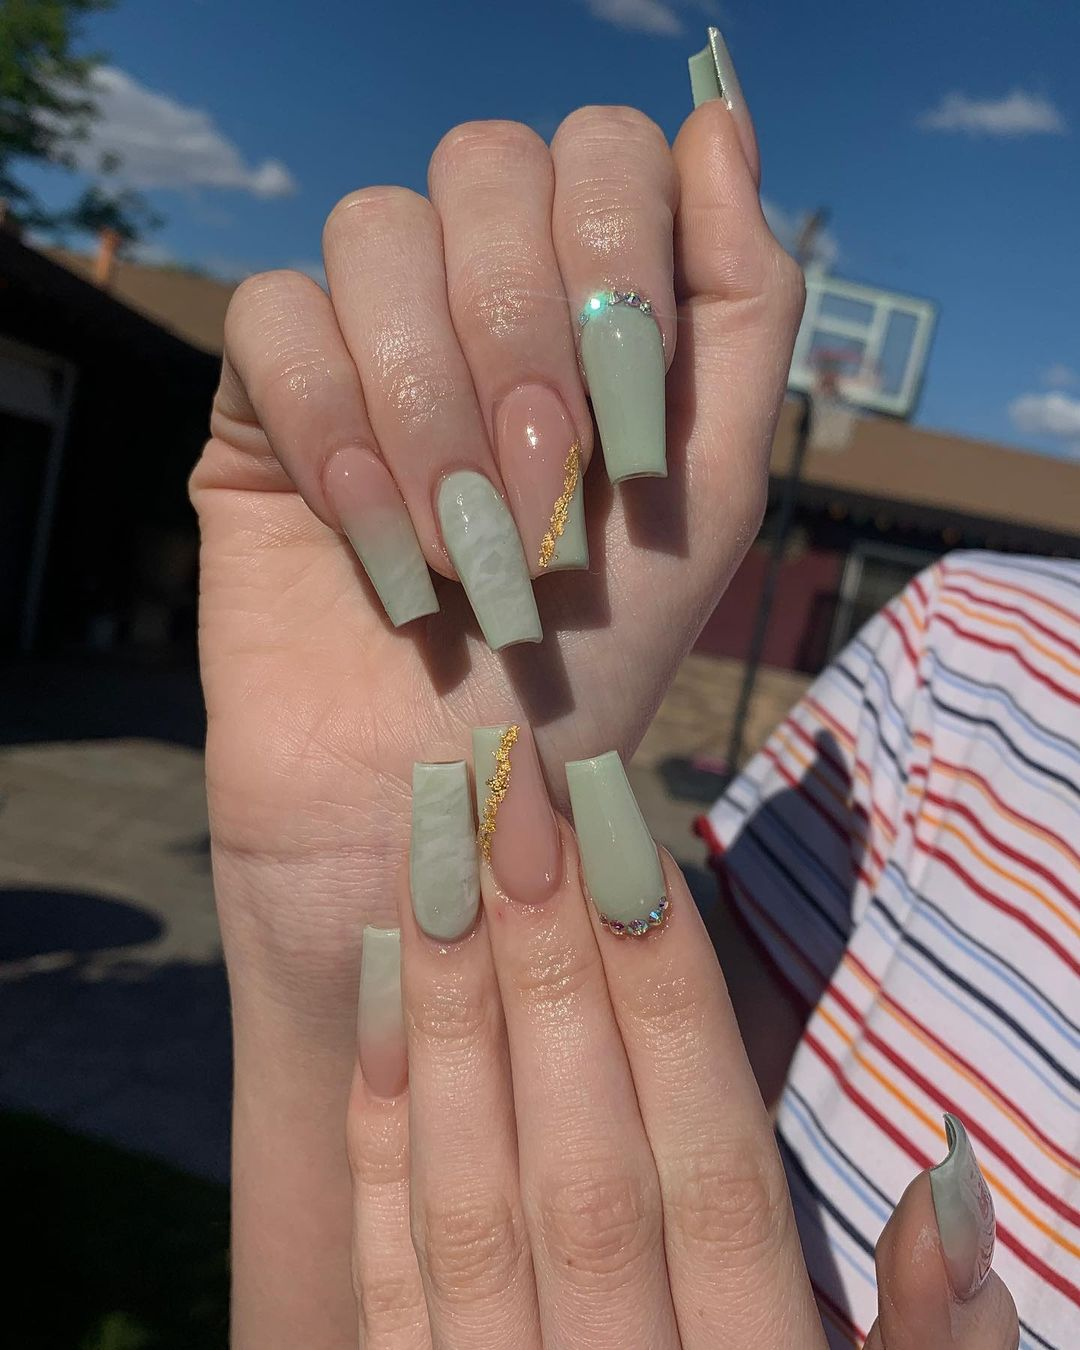 Sage green nails with gold designs